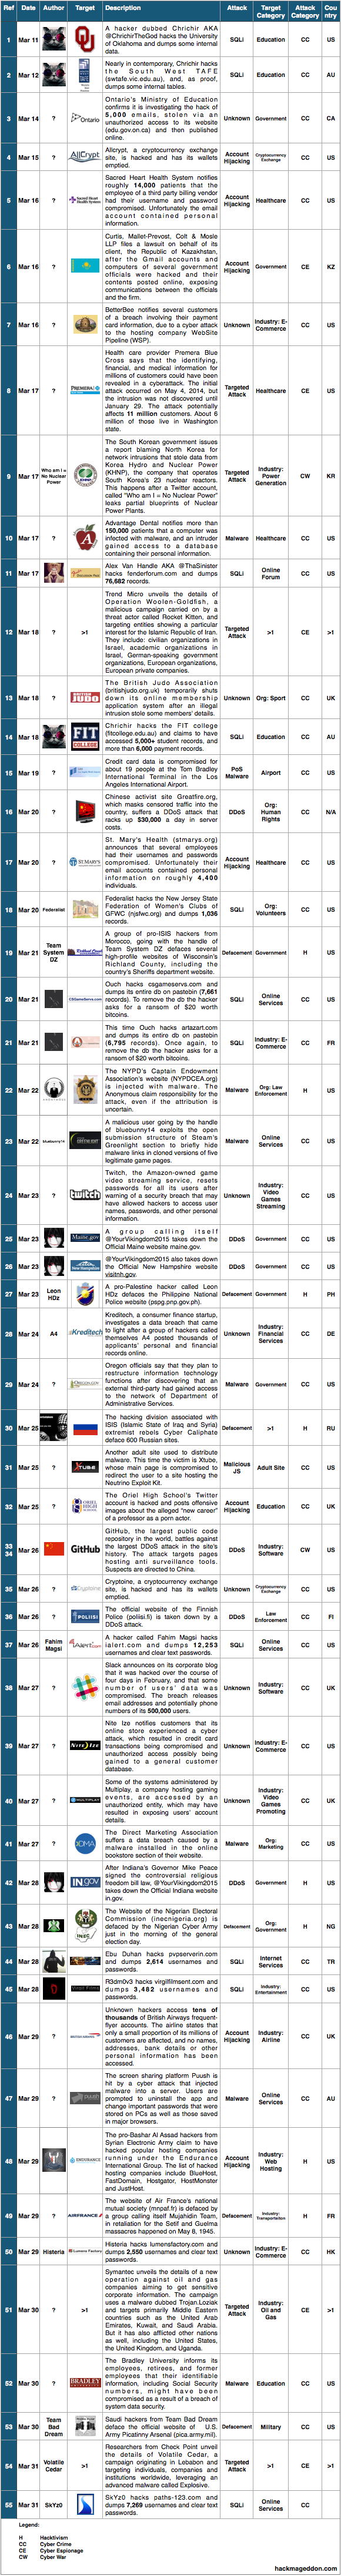 16-31 Mar 2015 Cyber Attacks Timelines